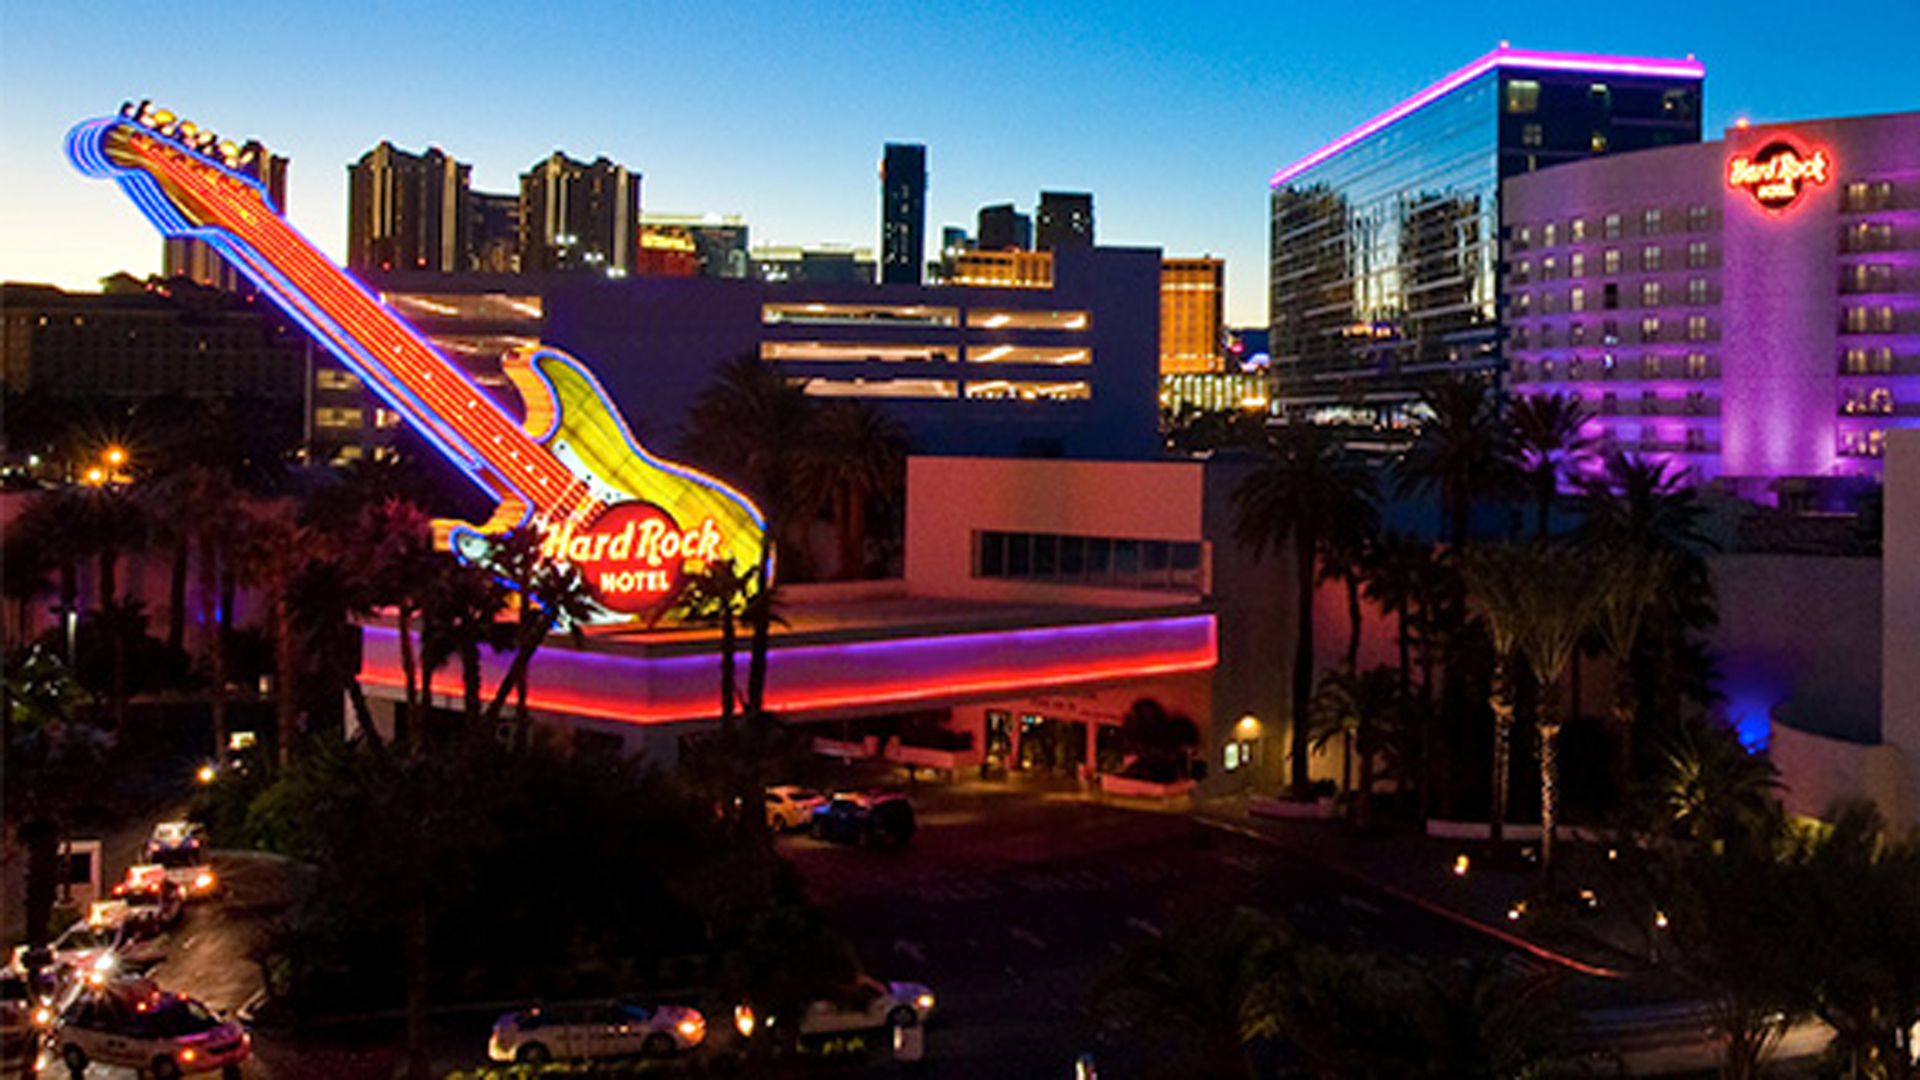 The Hard Rock Hotel and Casino in Las Vegas is seen in a photo provided by the hotel.